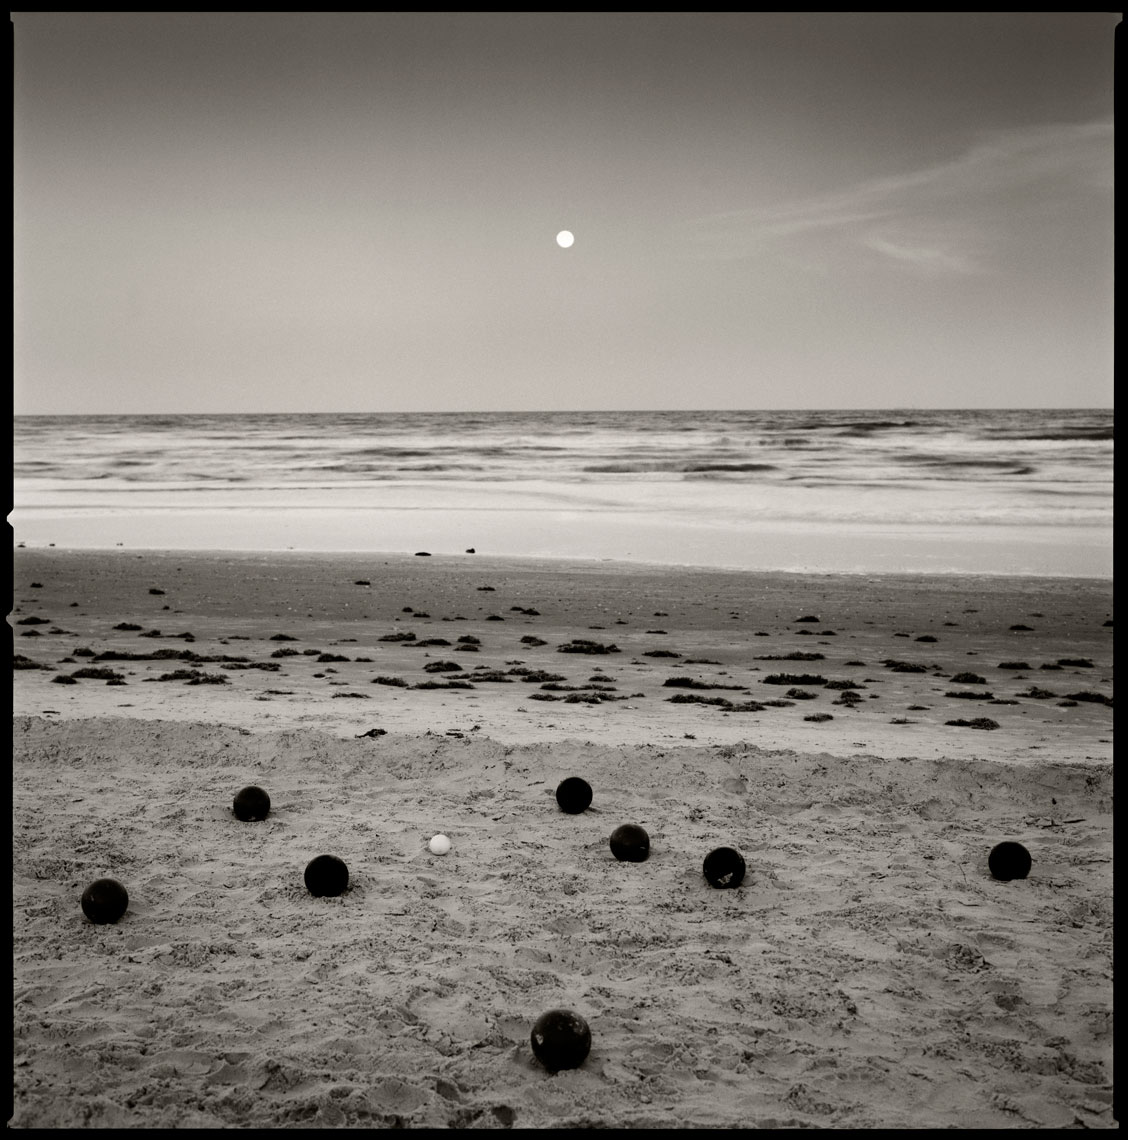 Bocce Balls on the beach with moon rise